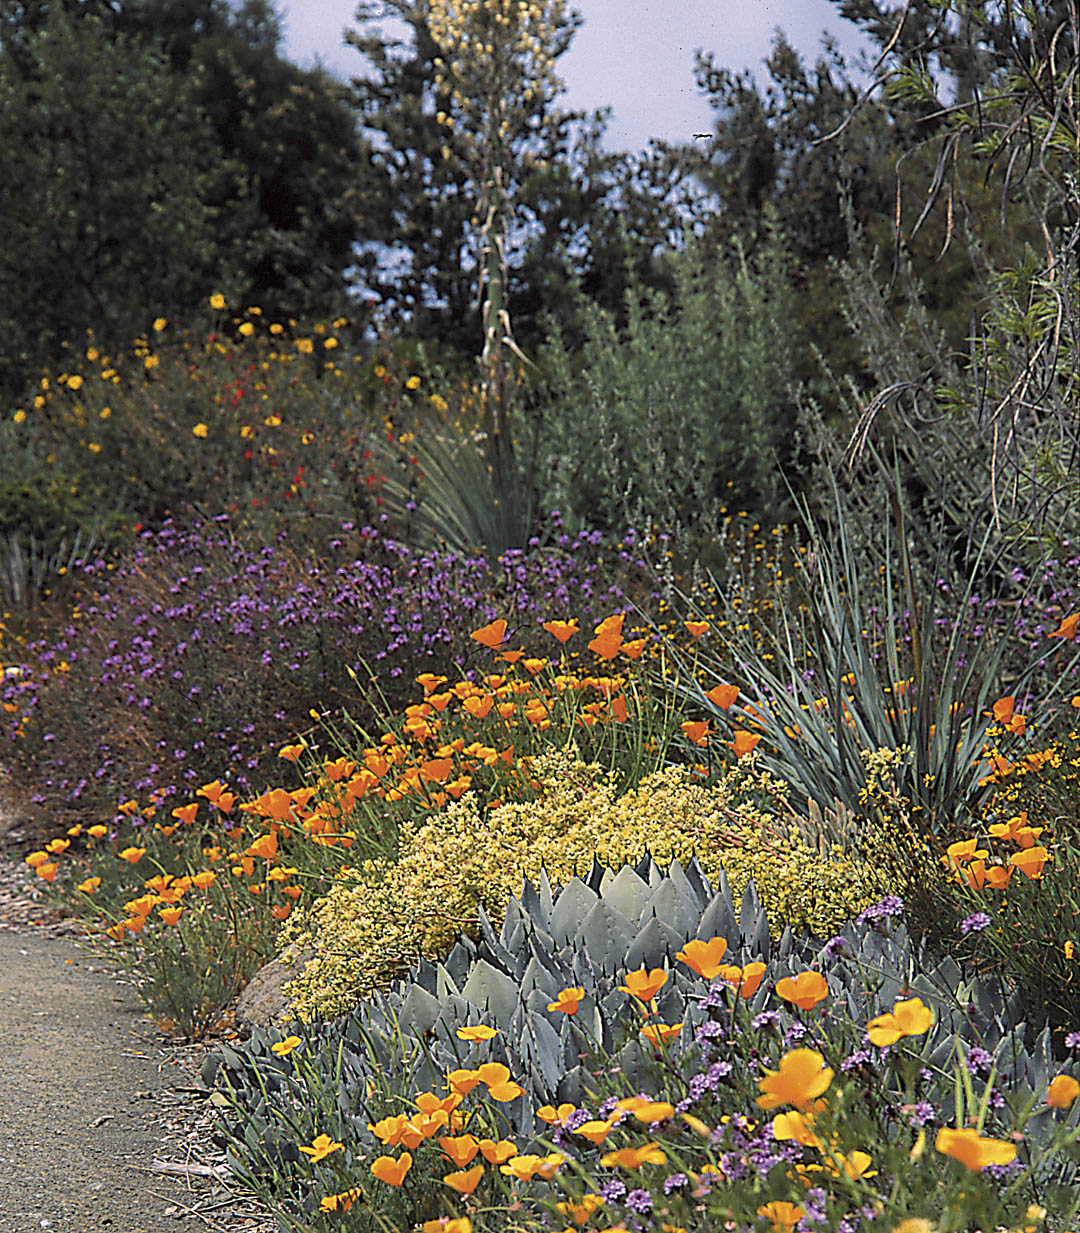 Captivating The California Natives In This Mixed Border At The Leaning Pine Arboretum,  Cal Poly, Design Ideas